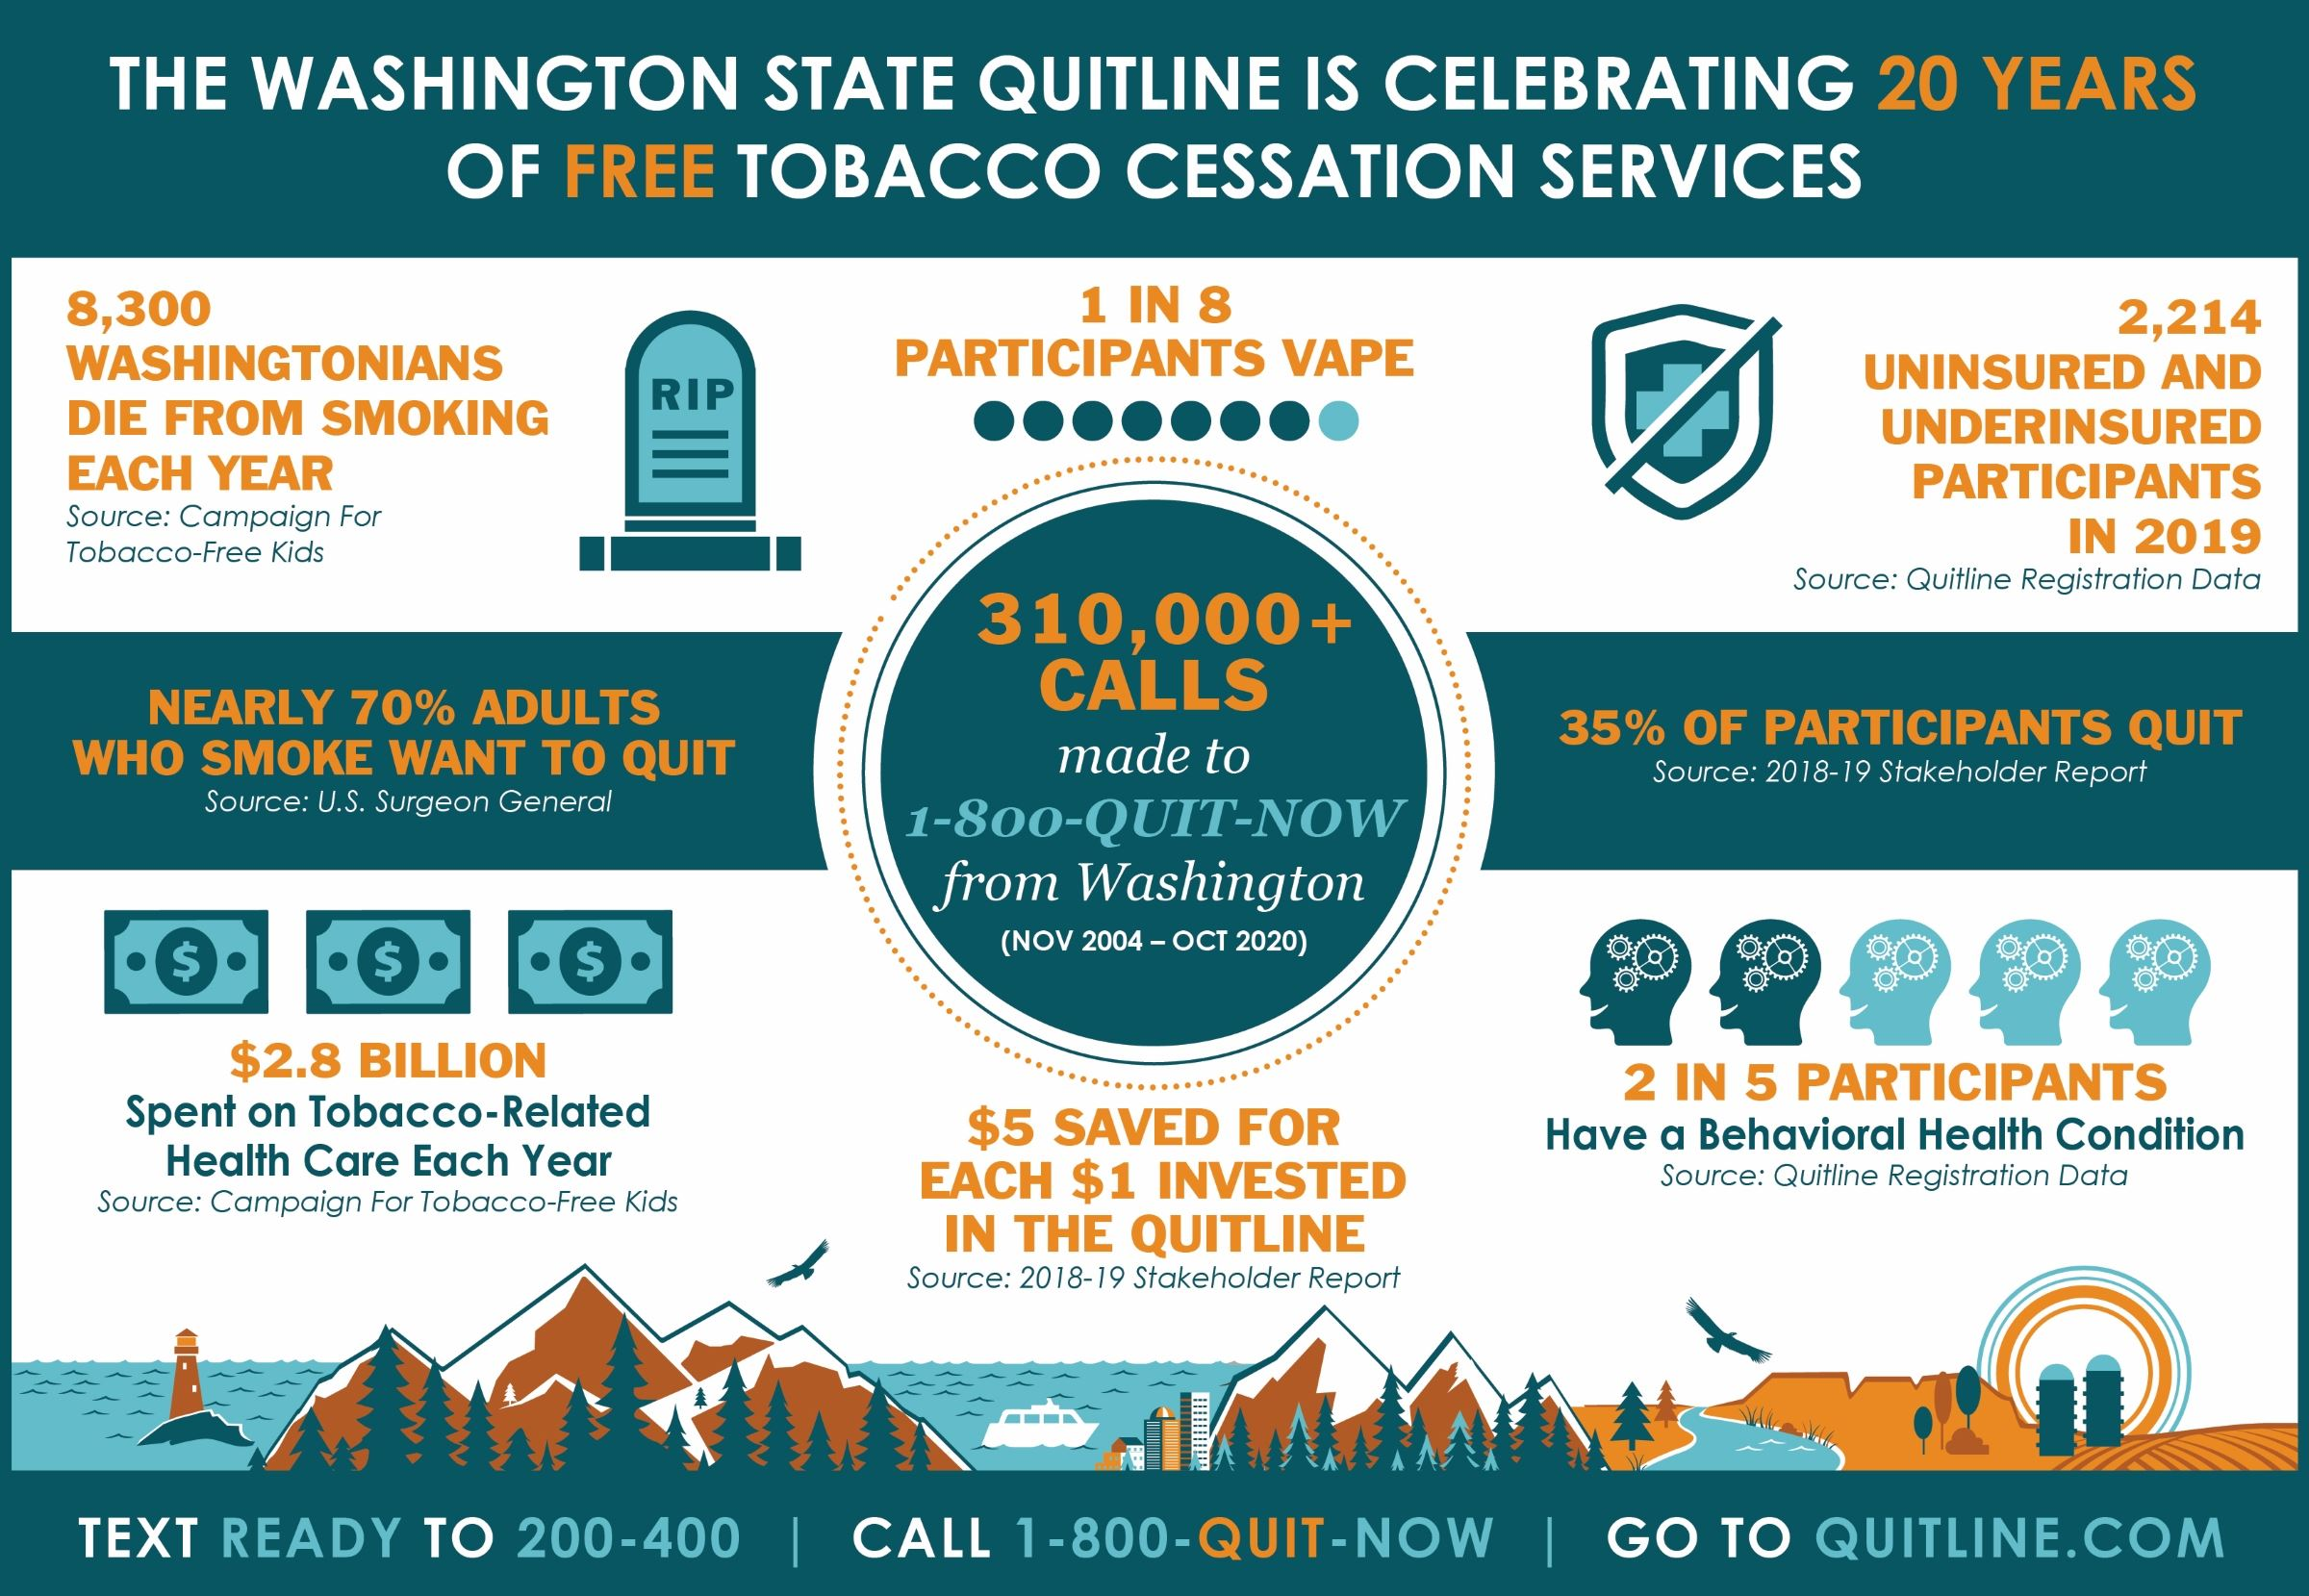 Quitline_20th Anniversary_Infographic_2400x1659